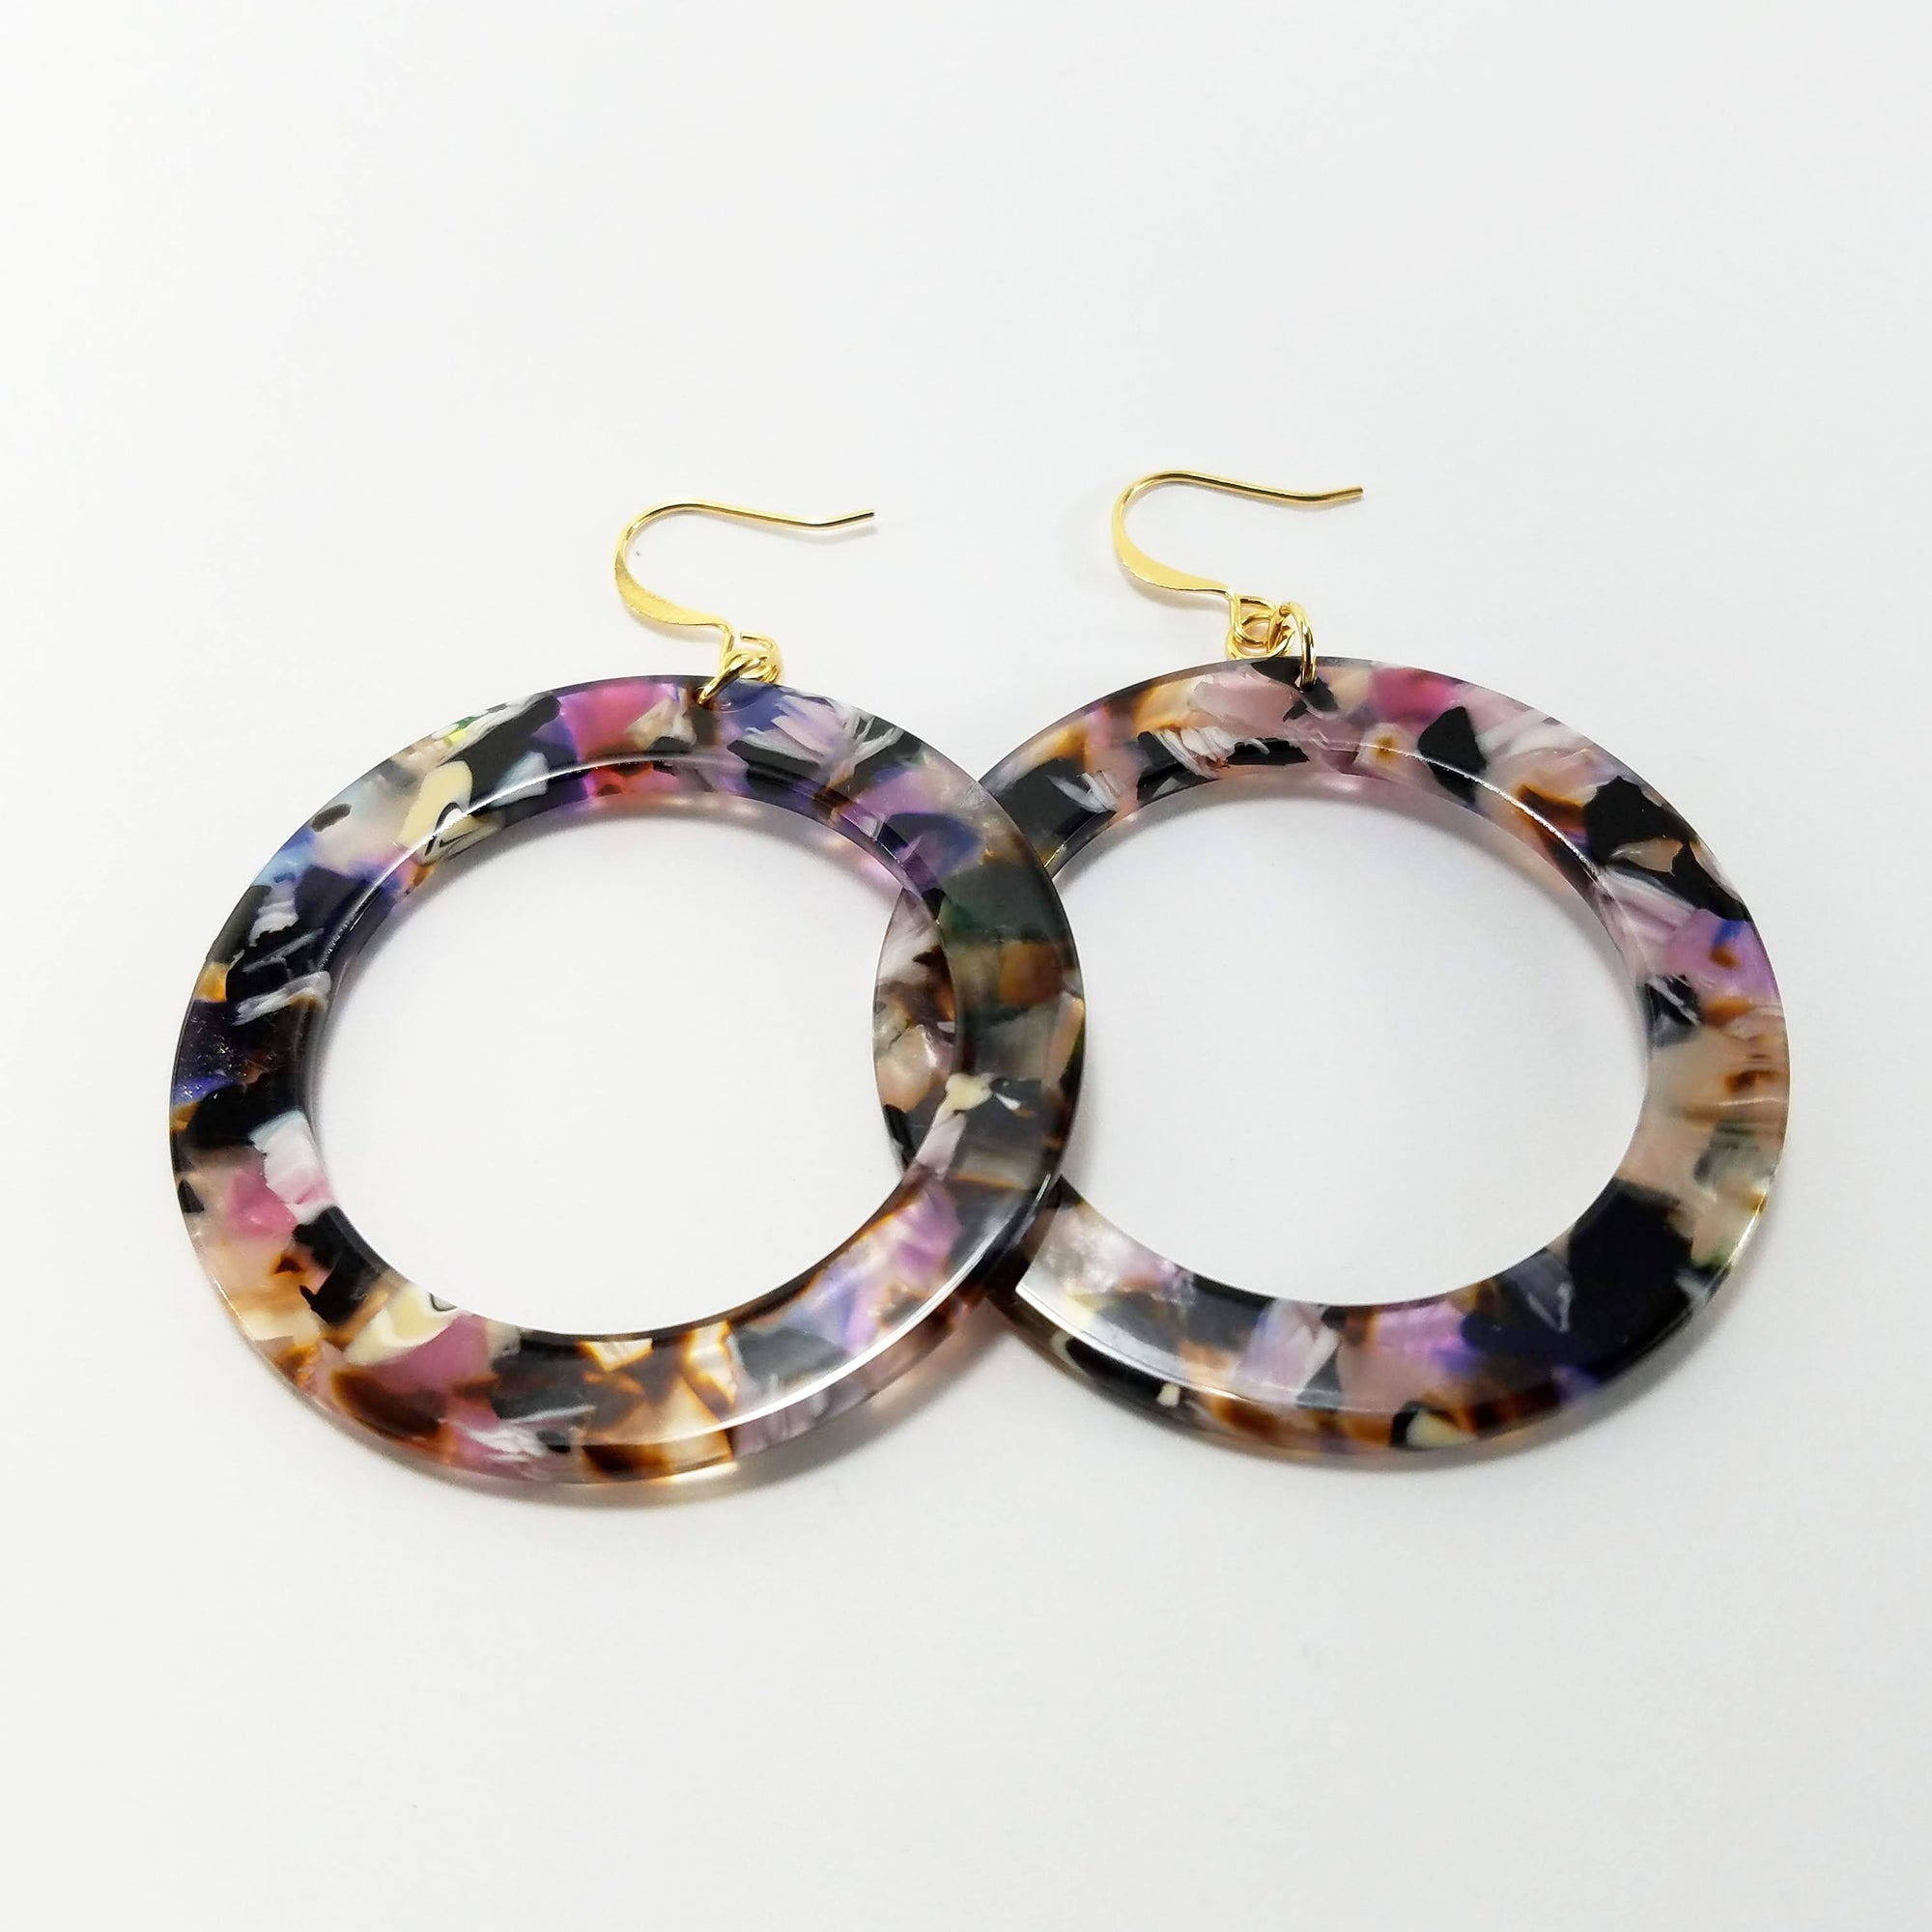 Verdier Jewelry Italian Amore Hoop Earrings